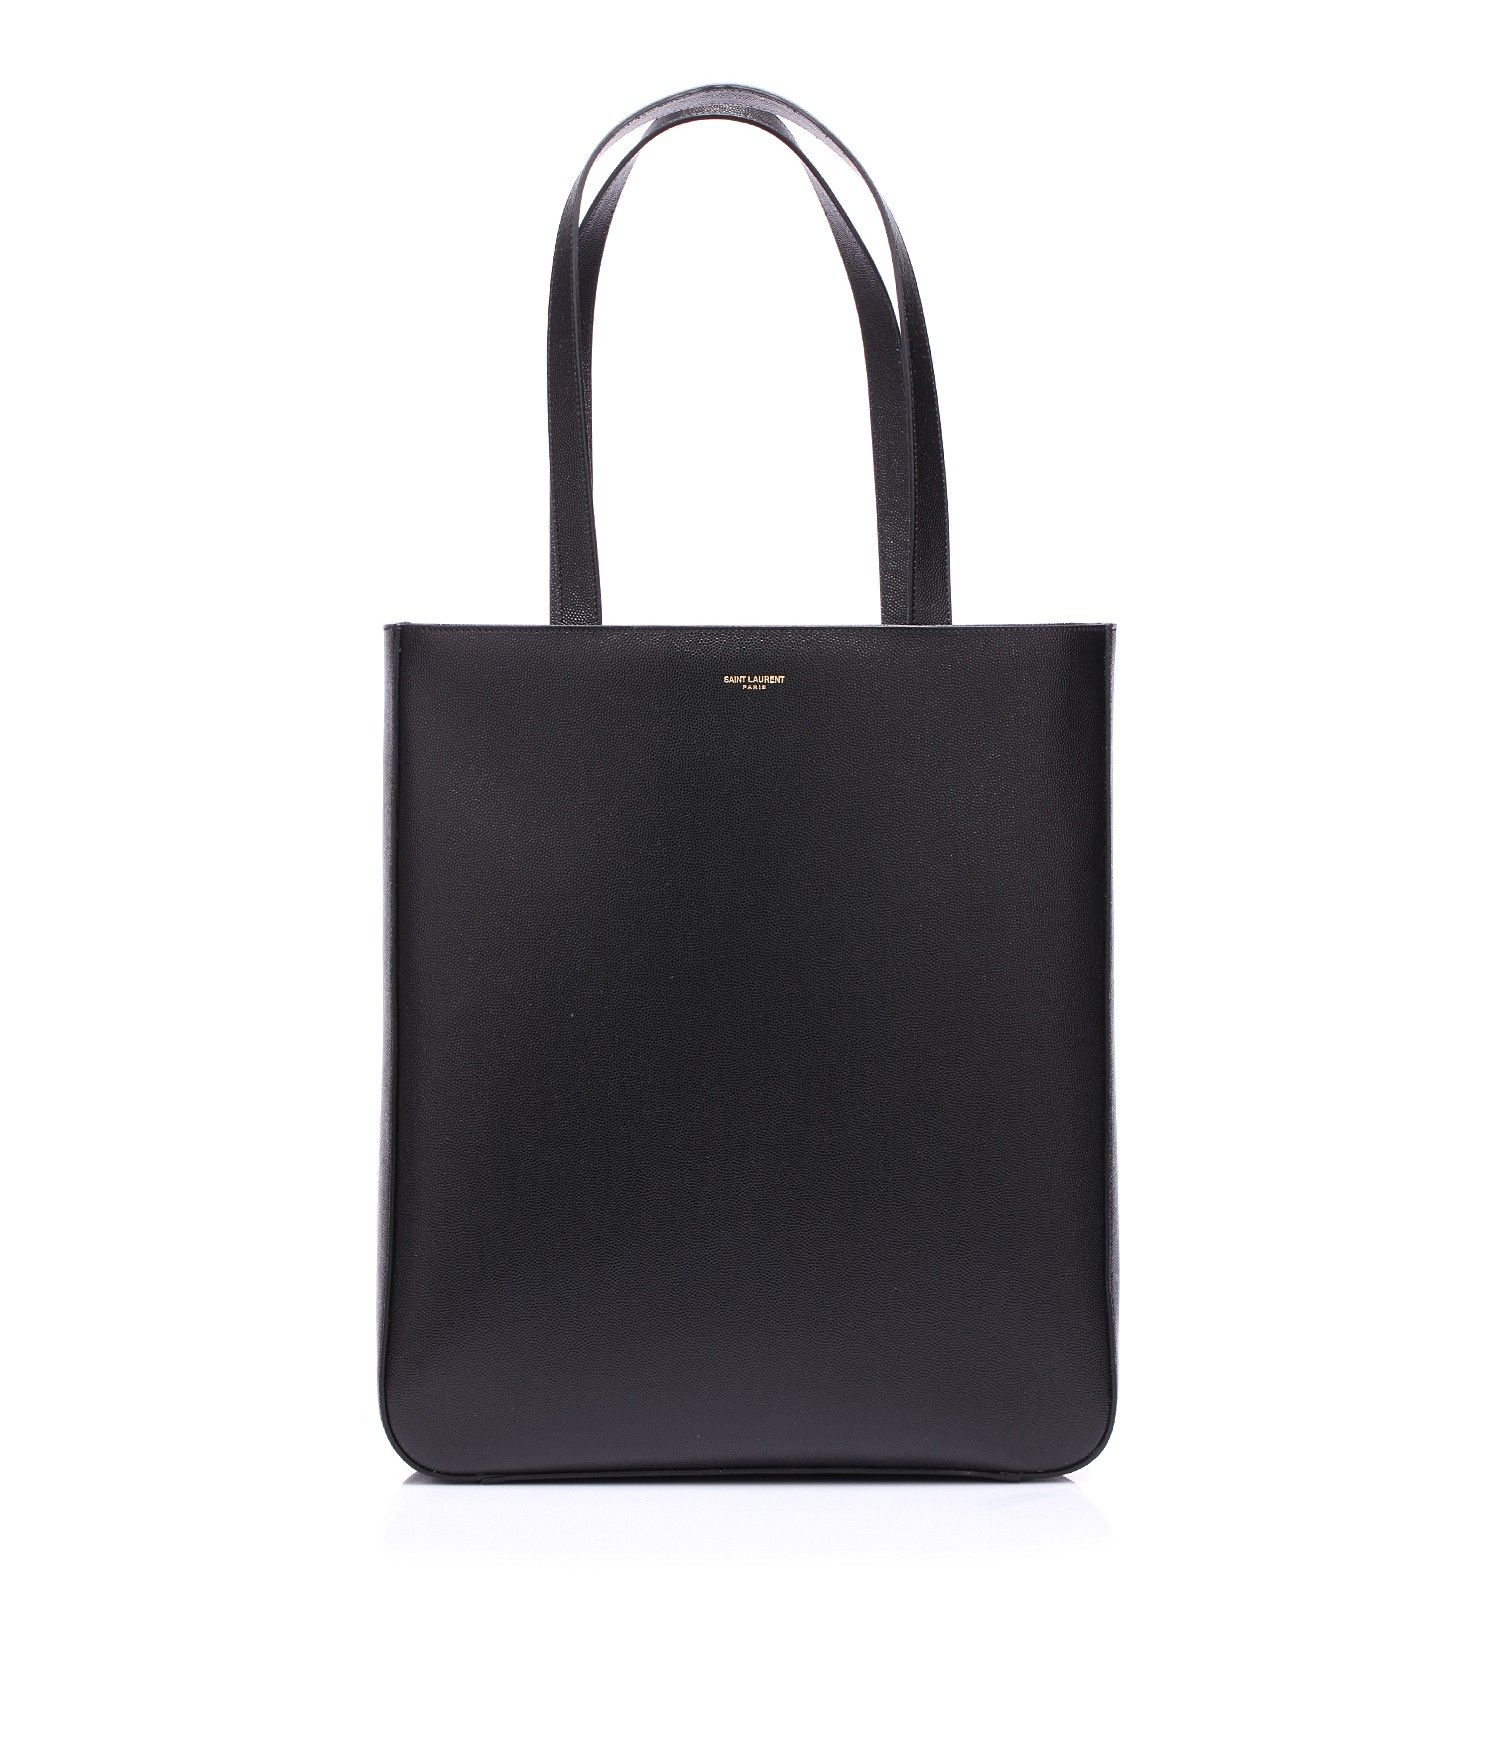 Leather bag like a shopping with hand-shoulder leather handles by @Yves Saint Laurent